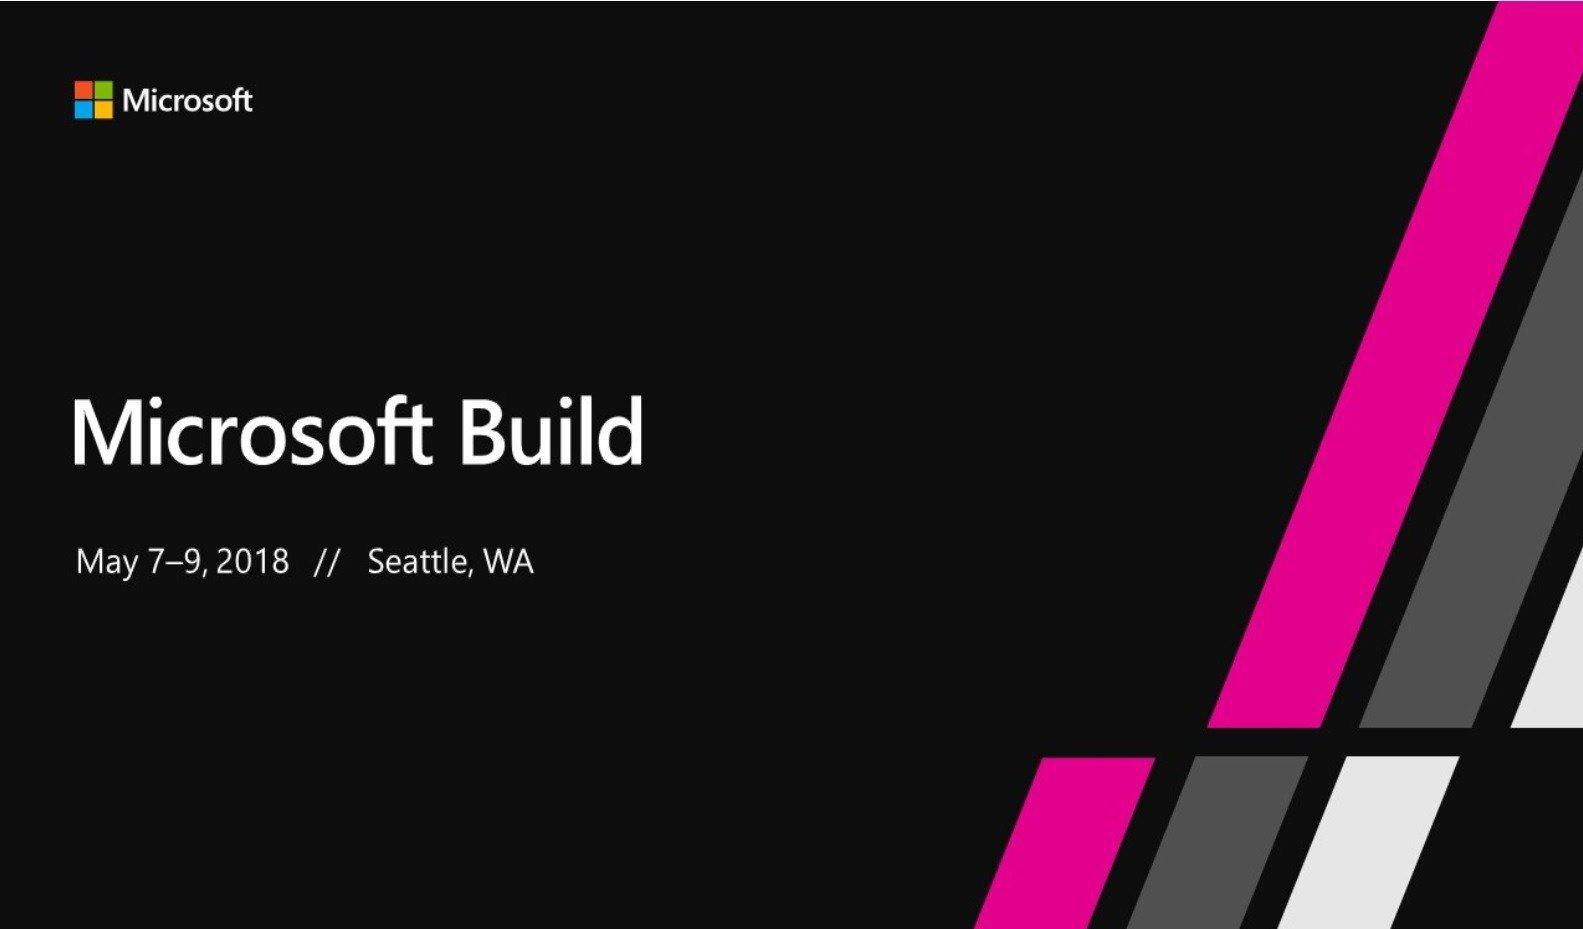 Microsoft Build 2018 Vision Keynote